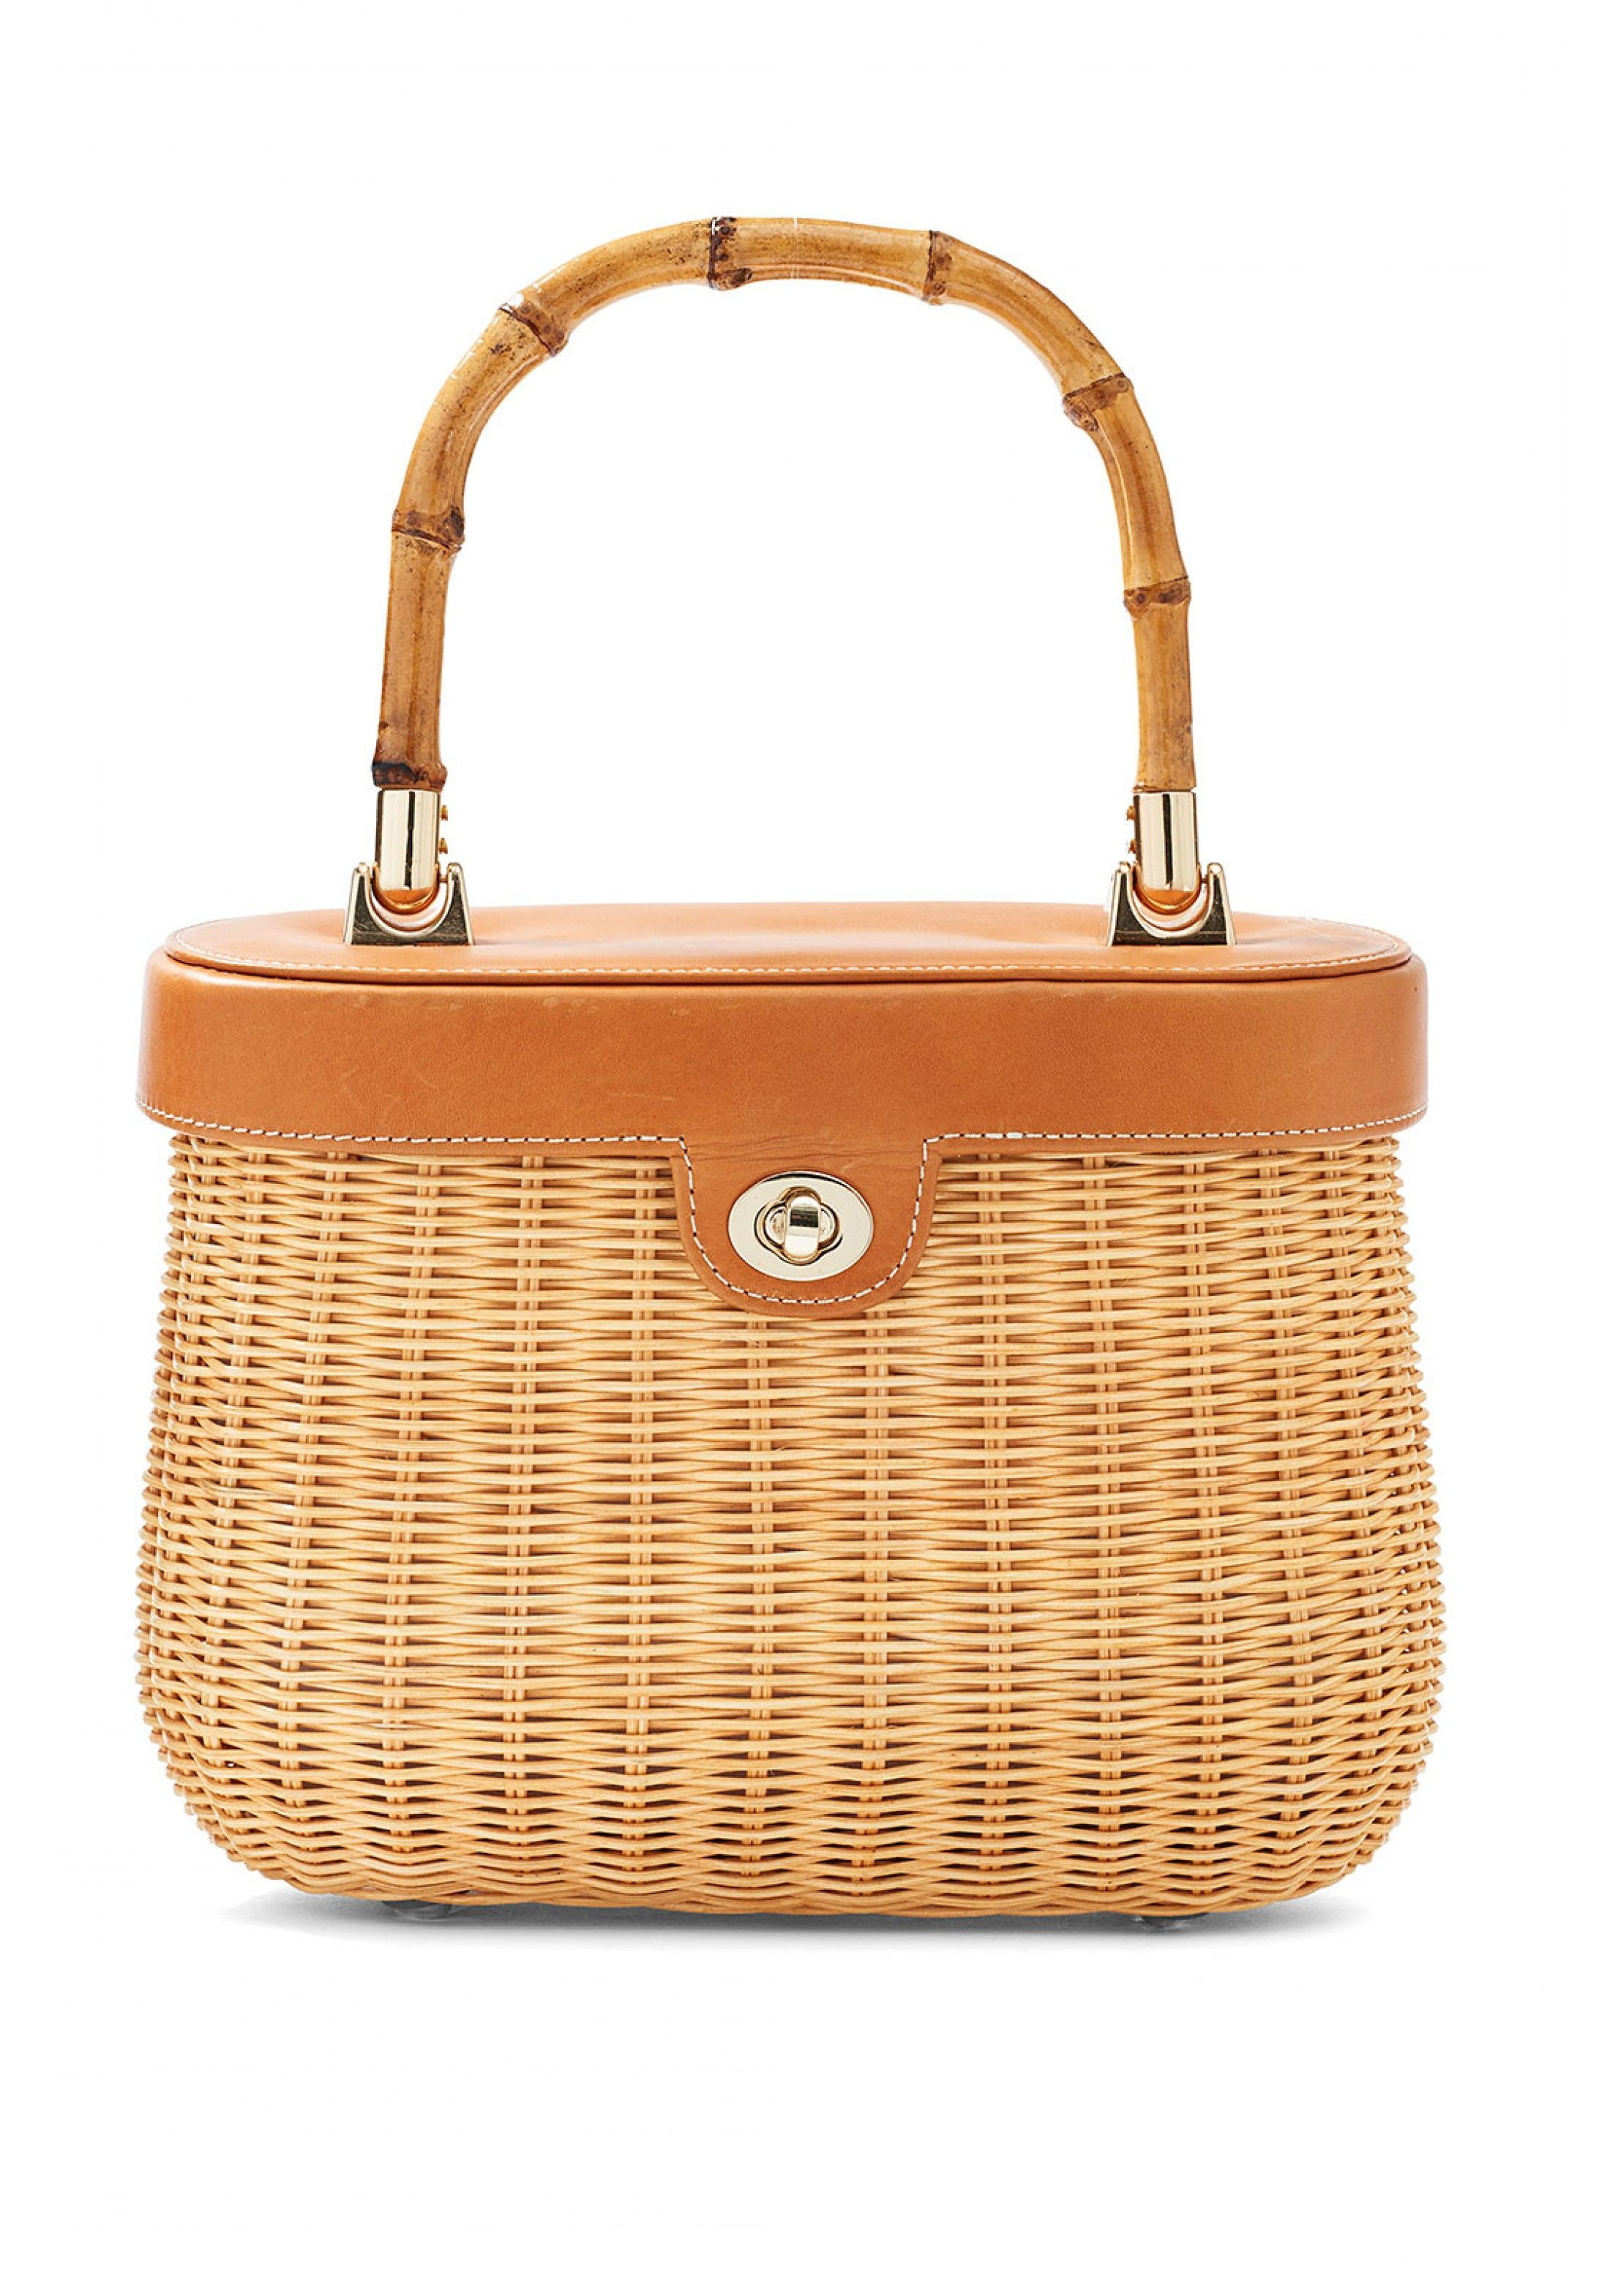 94e2e03eac343 Natural Ava Bamboo Handle Wicker Satchel - Women s New Arrivals ...